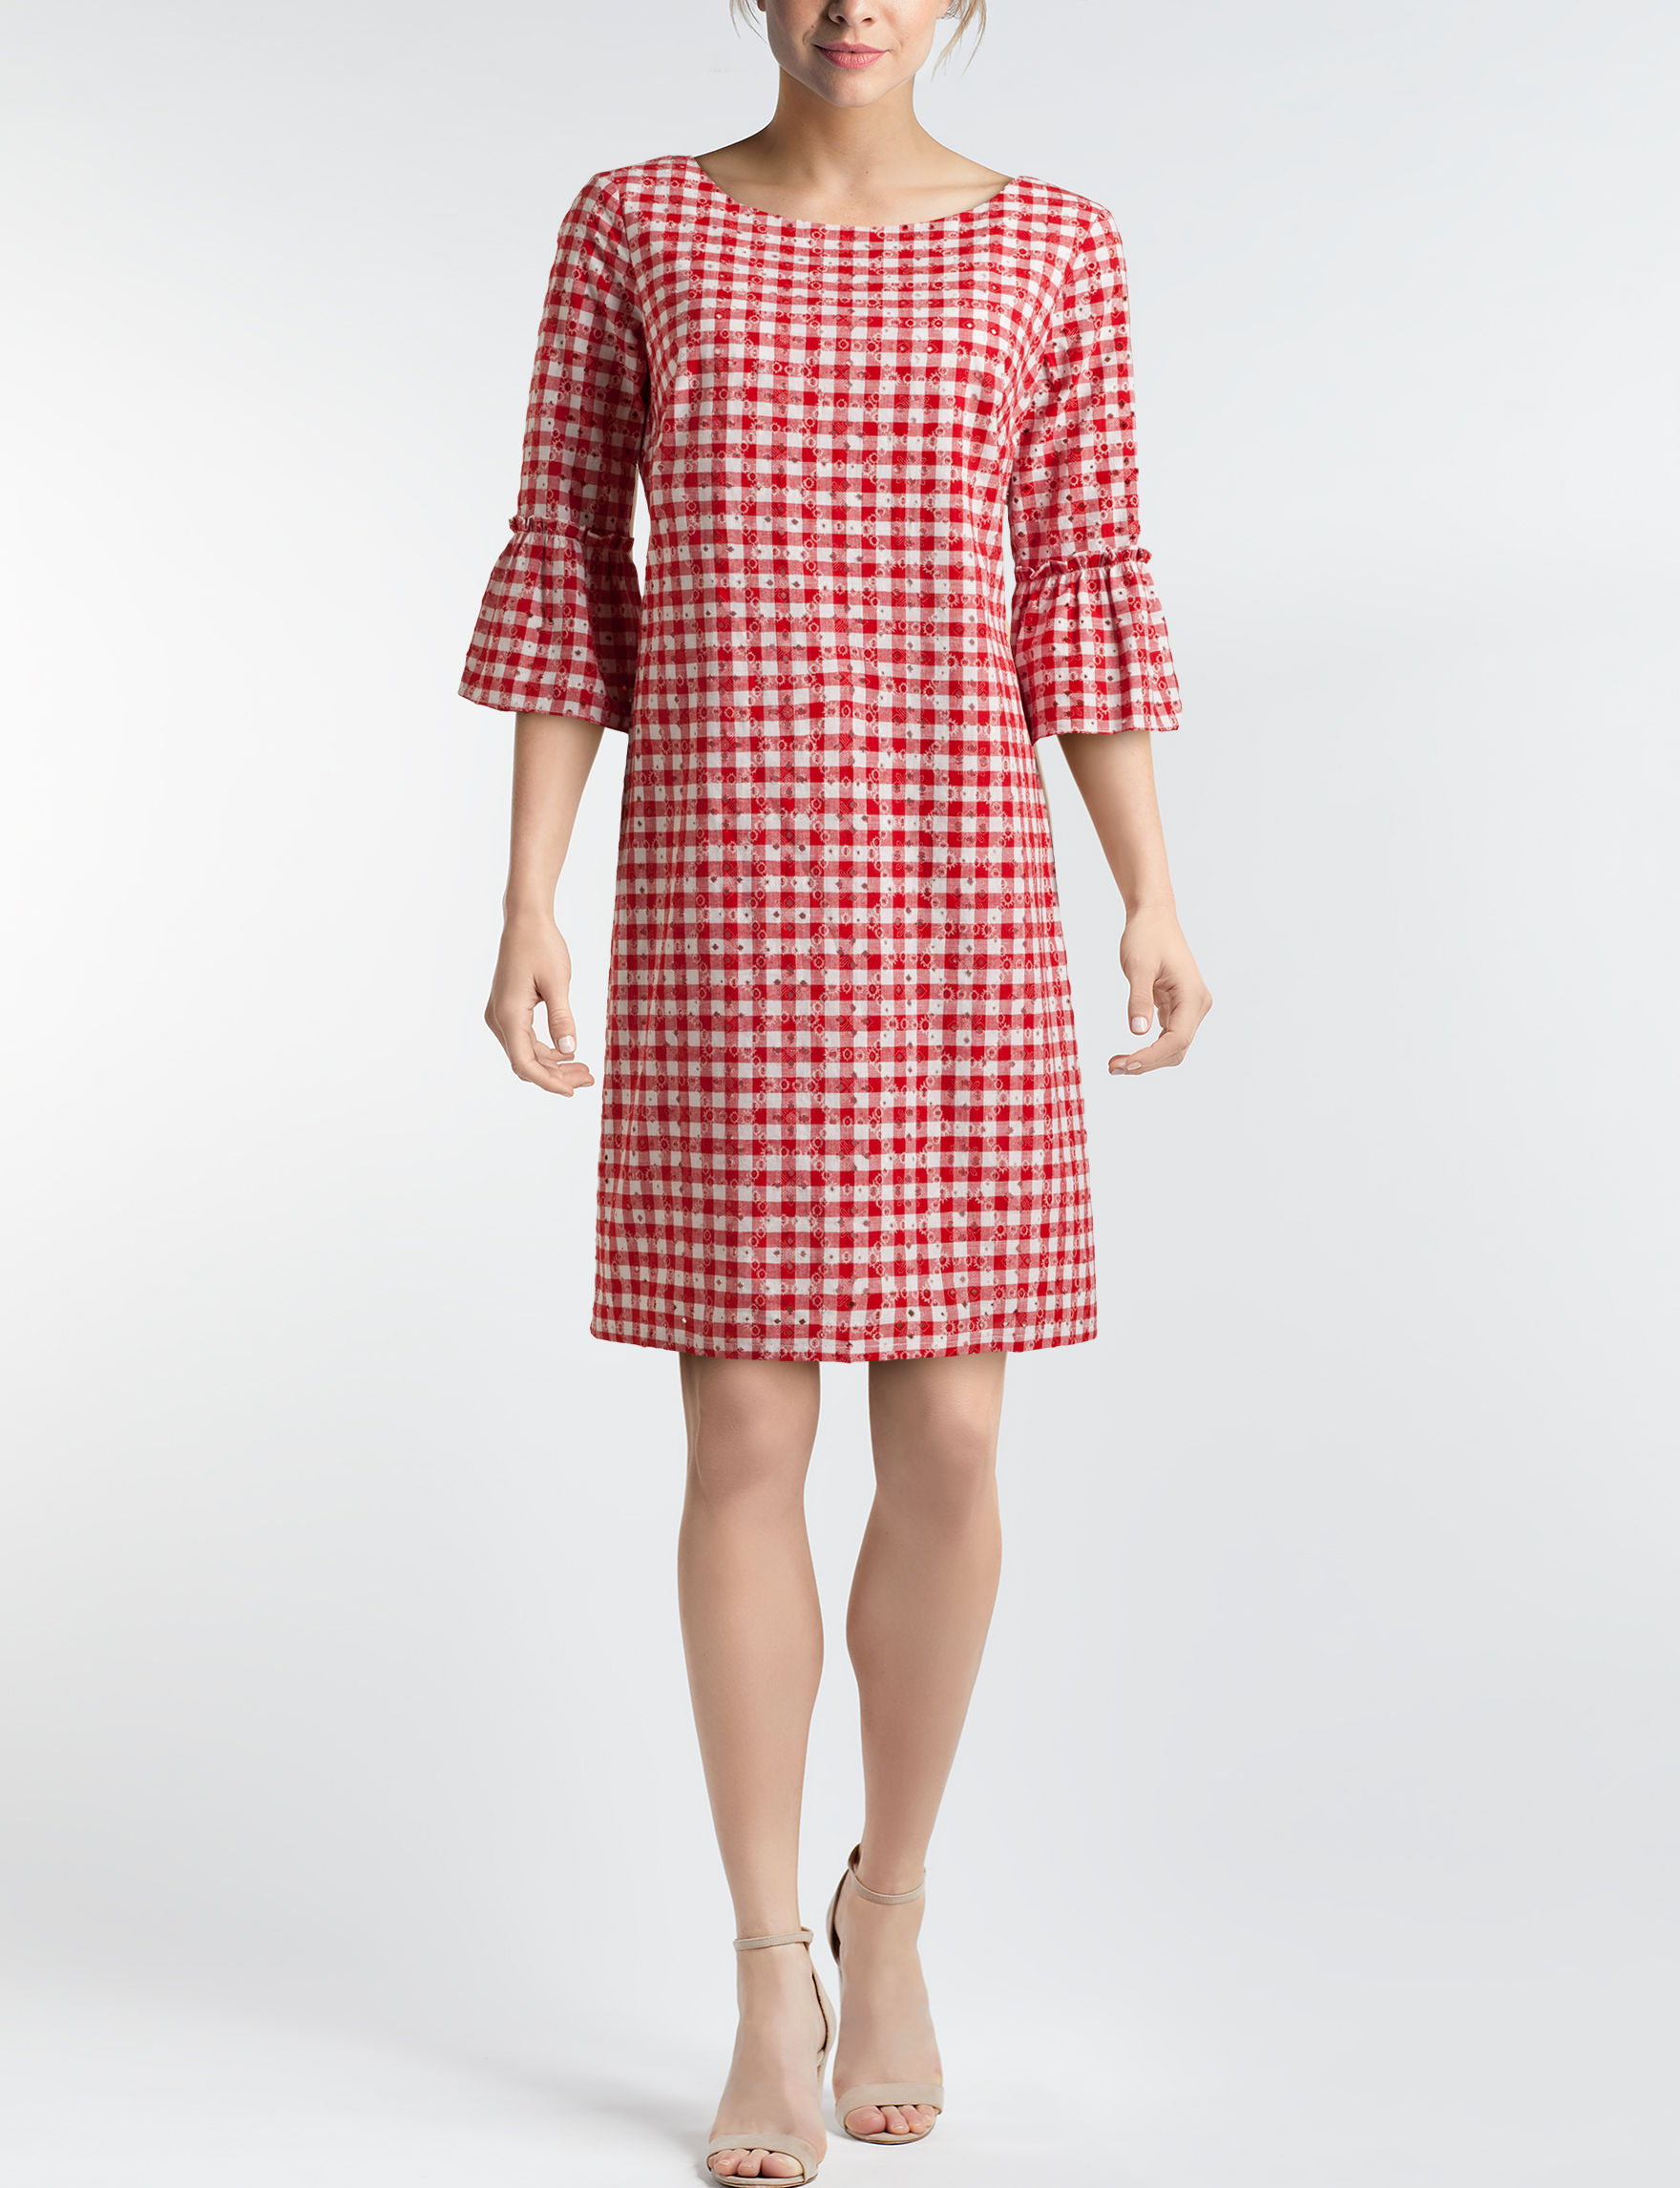 Sangria Red Everyday & Casual Shift Dresses